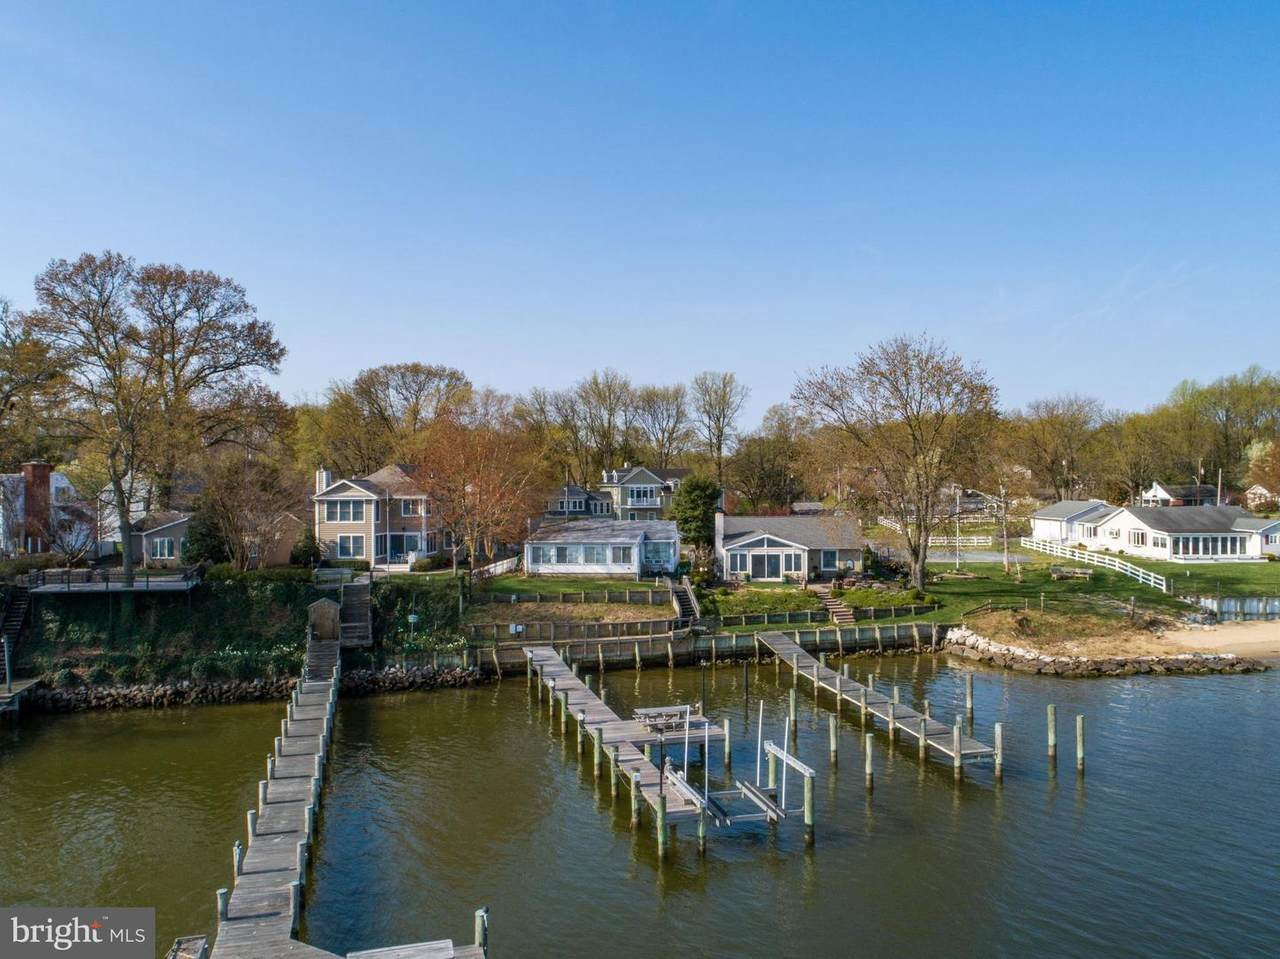 502 Bay View Point Drive - Photo 1